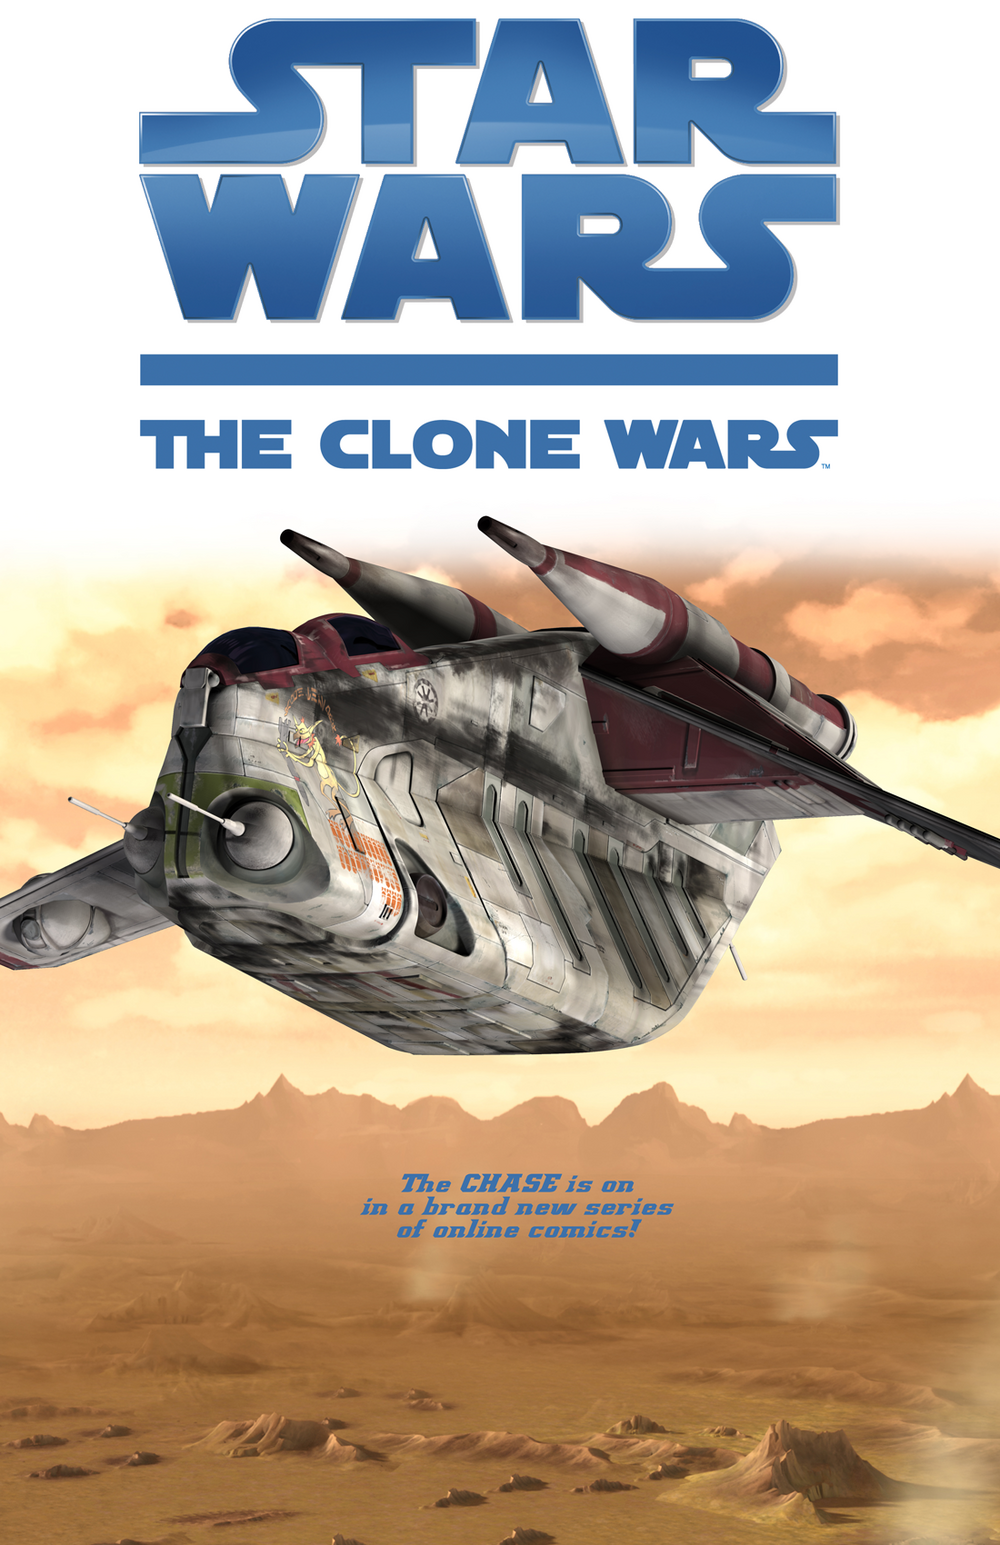 Star Wars The Clone Wars: Hunting the Hunters